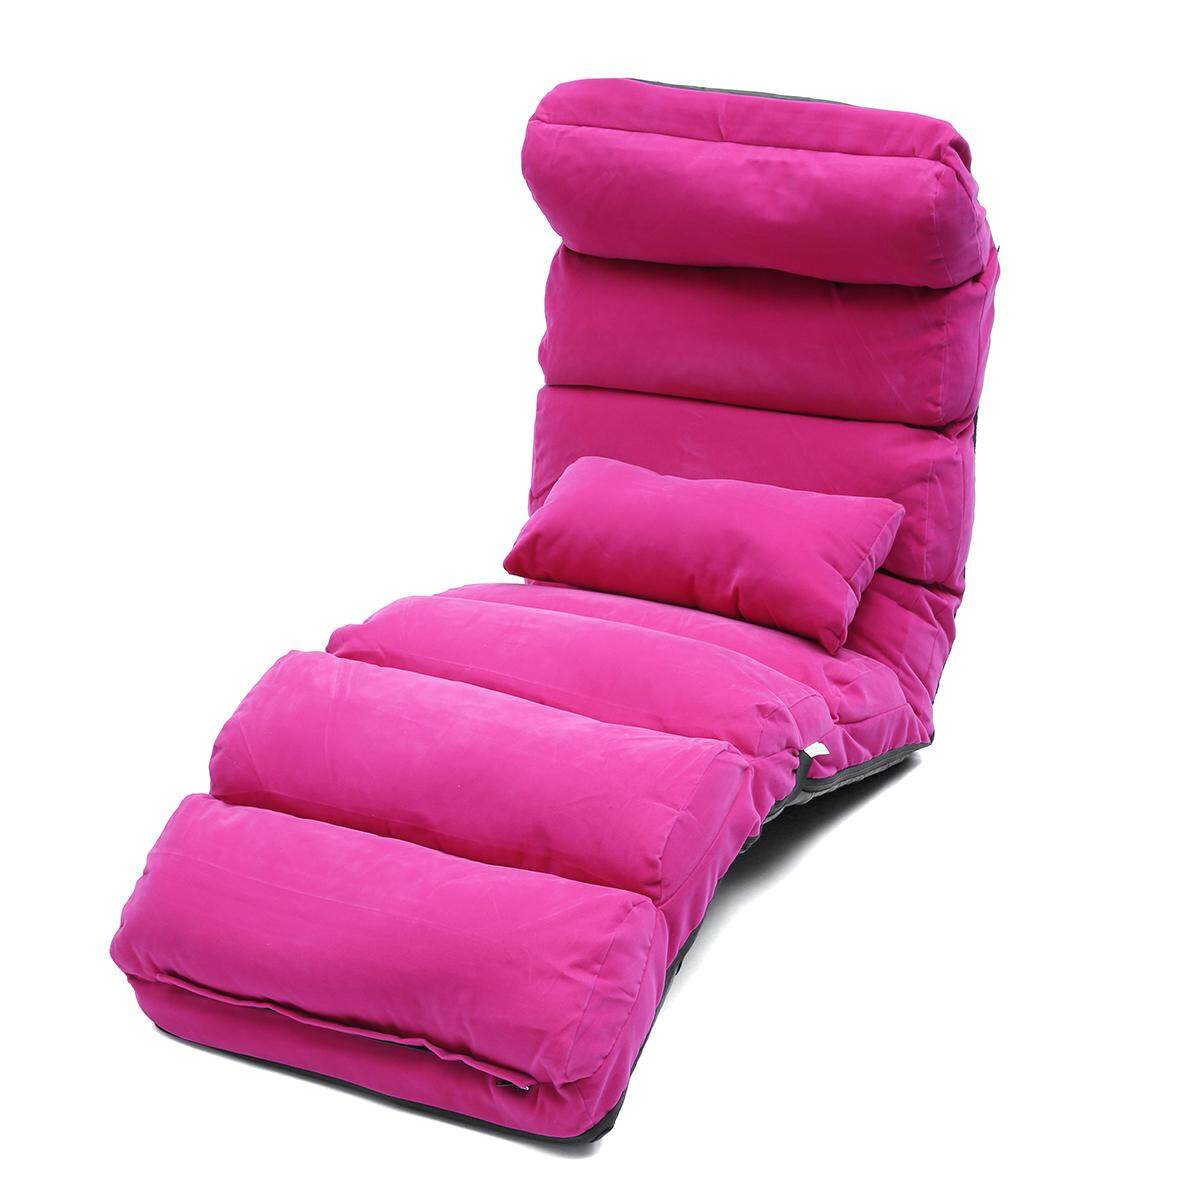 Lounge Sofa Bed Floor Recliner Folding Chaise Chair Adjustable Foldable AU Home Rose(Standard Size)